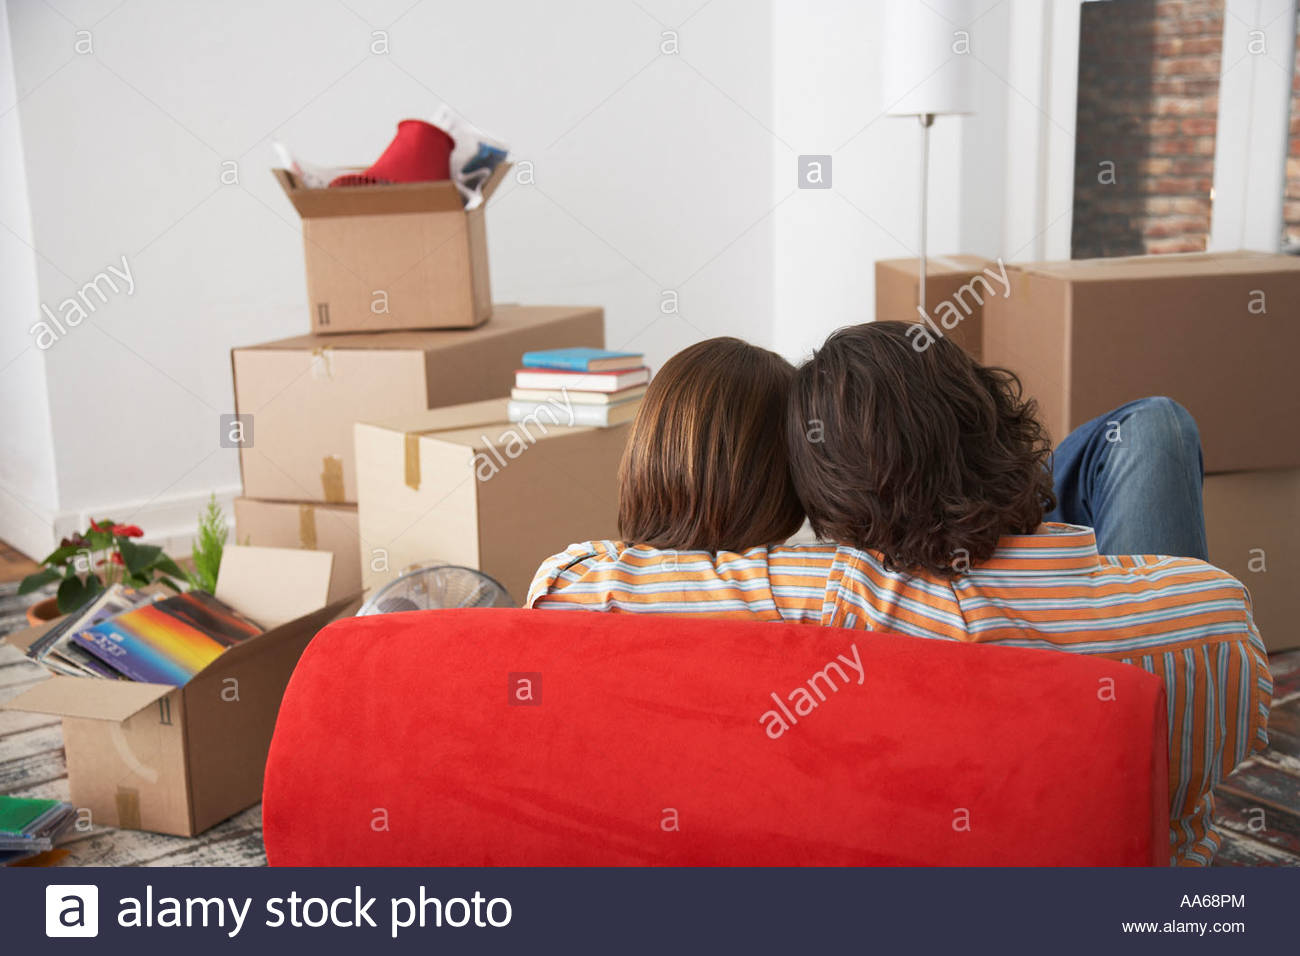 Vue arrière du couple sur red chair in house with cardboard boxes Photo Stock